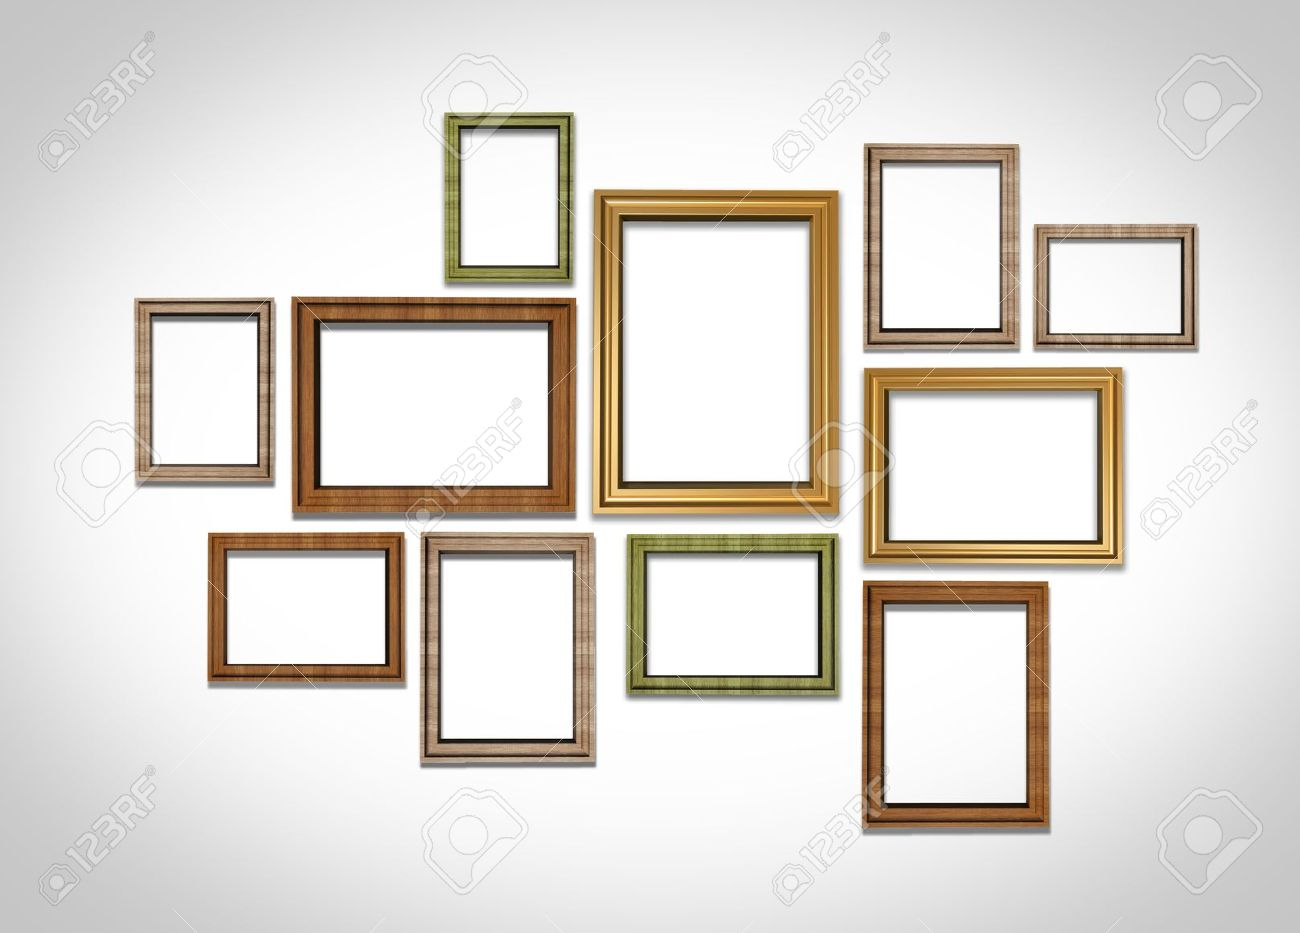 White Wall Frames picture frames on white wall stock photo, picture and royalty free